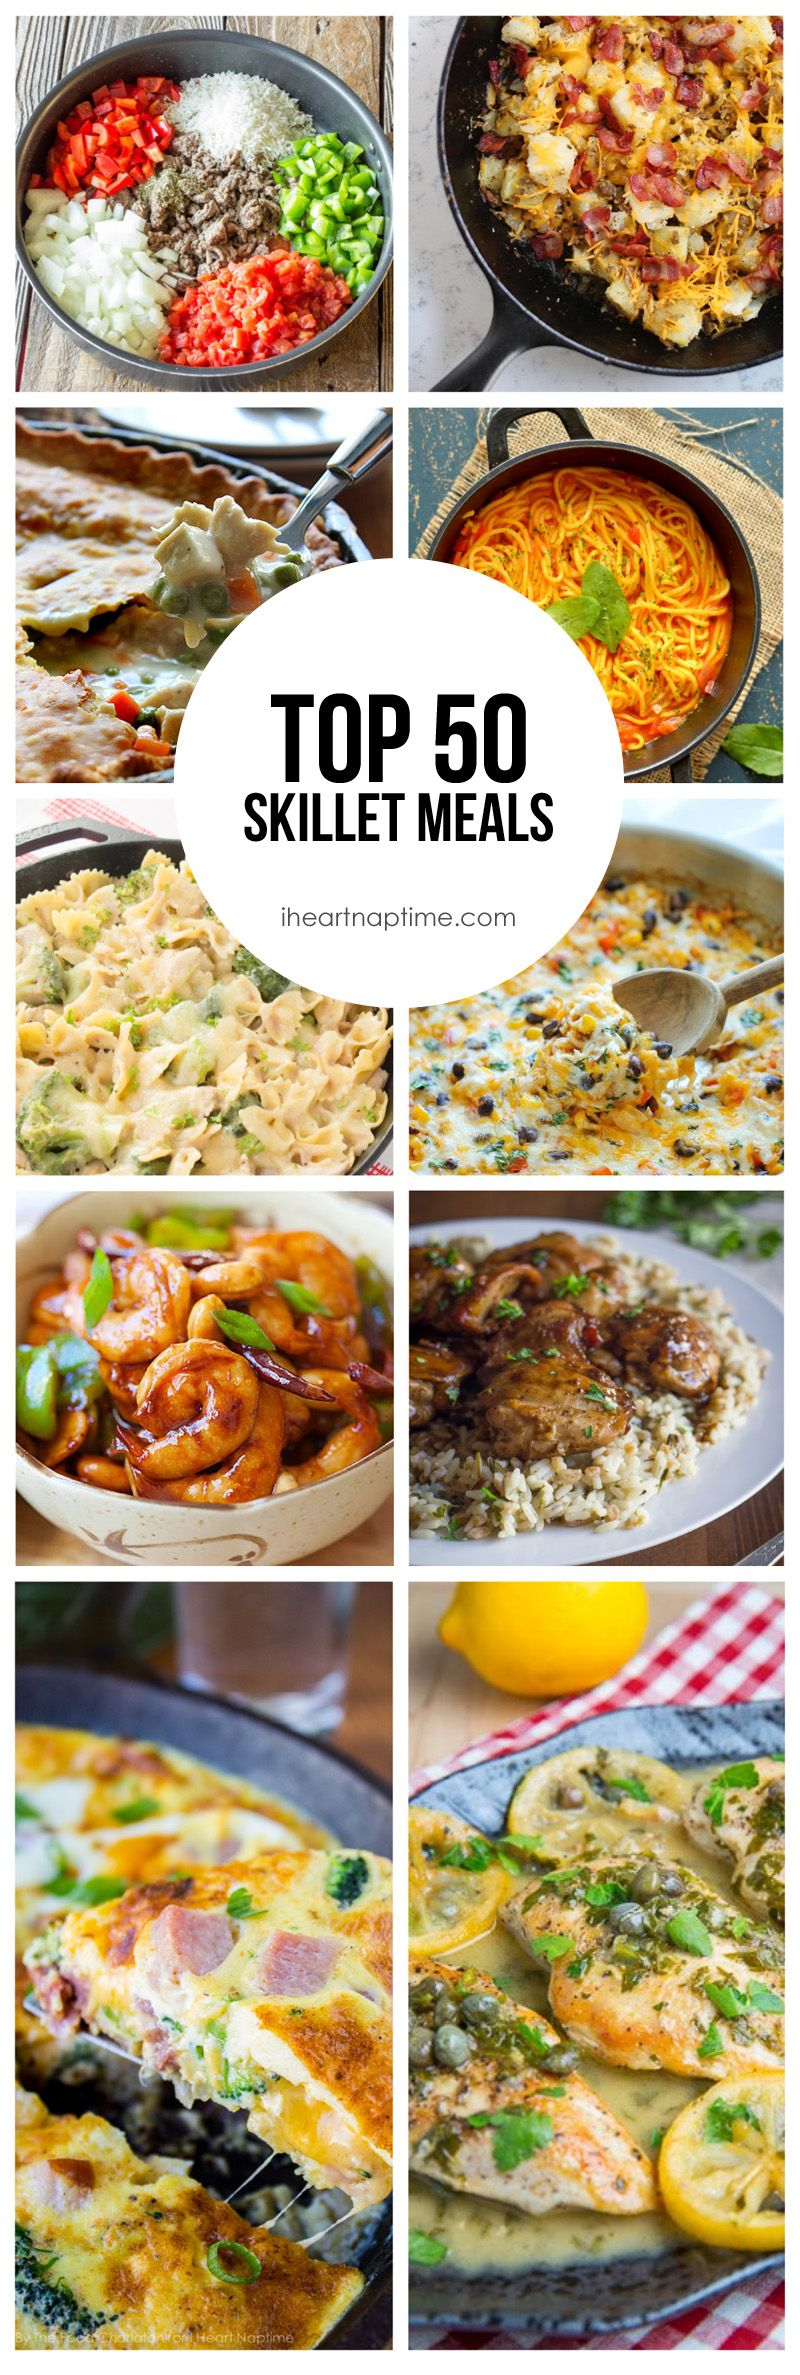 Top 50 Skillet Meals - Delicious recipes that can be cooked all in one pot!